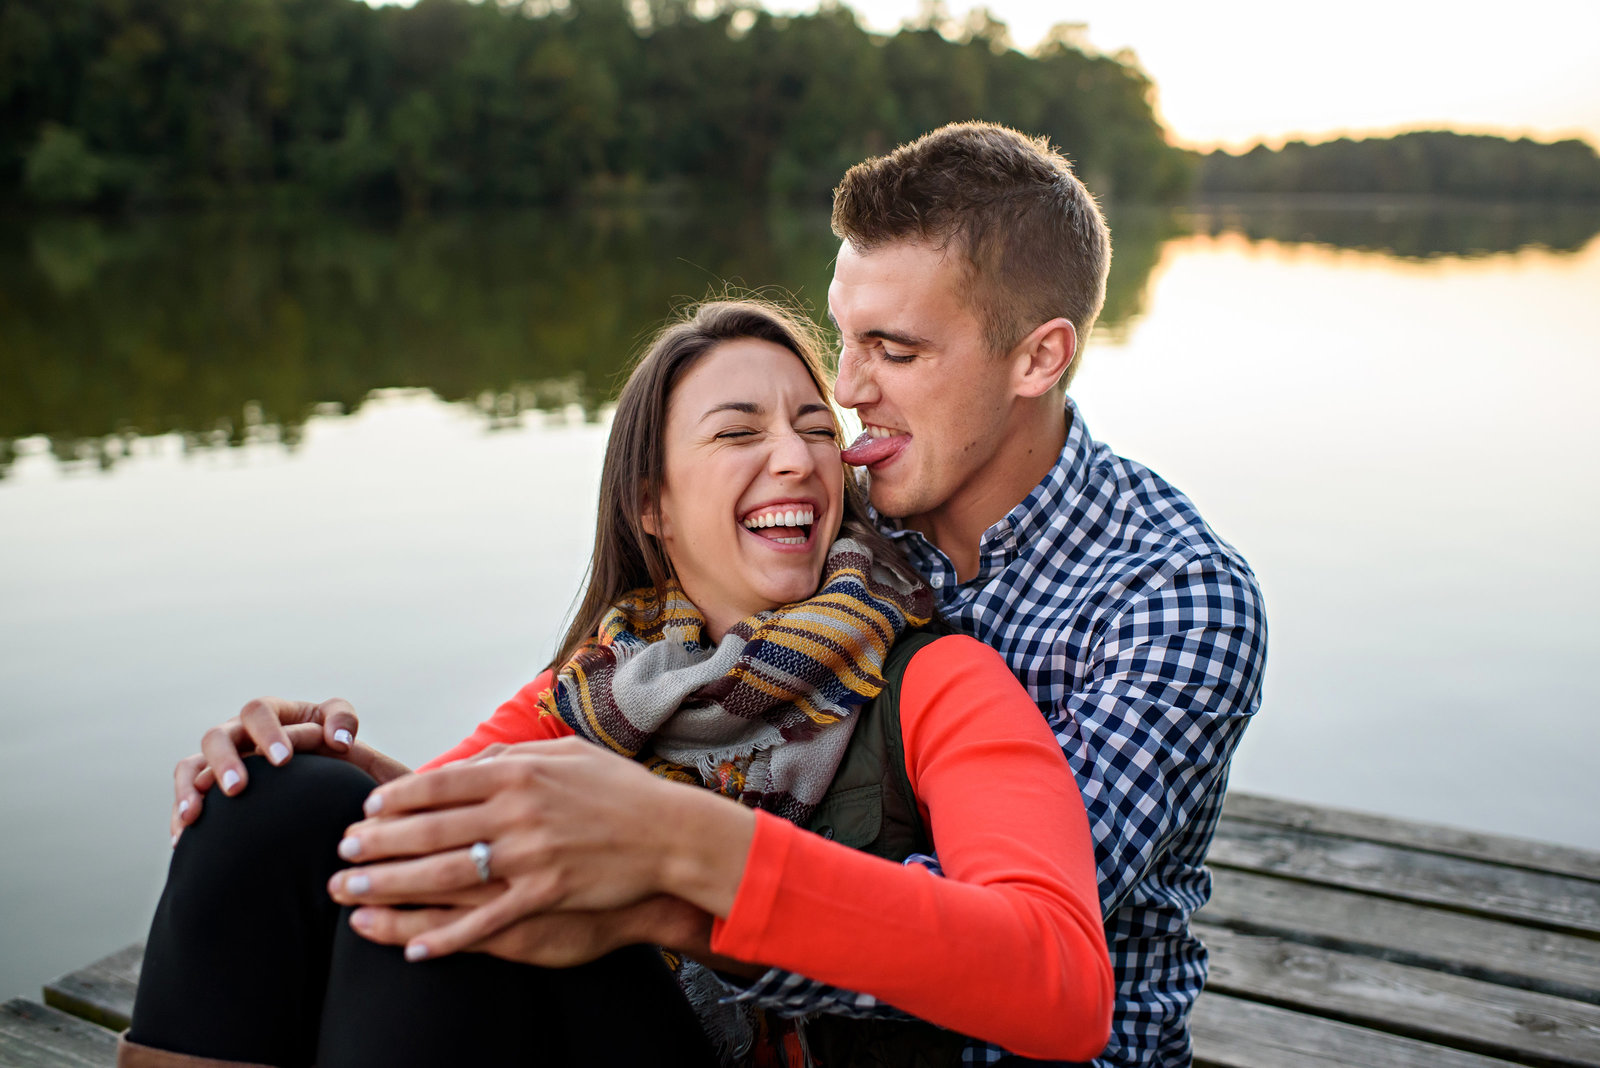 A man licks his fiance's cheek while sitting on a dock floating on a lake in Delaware.